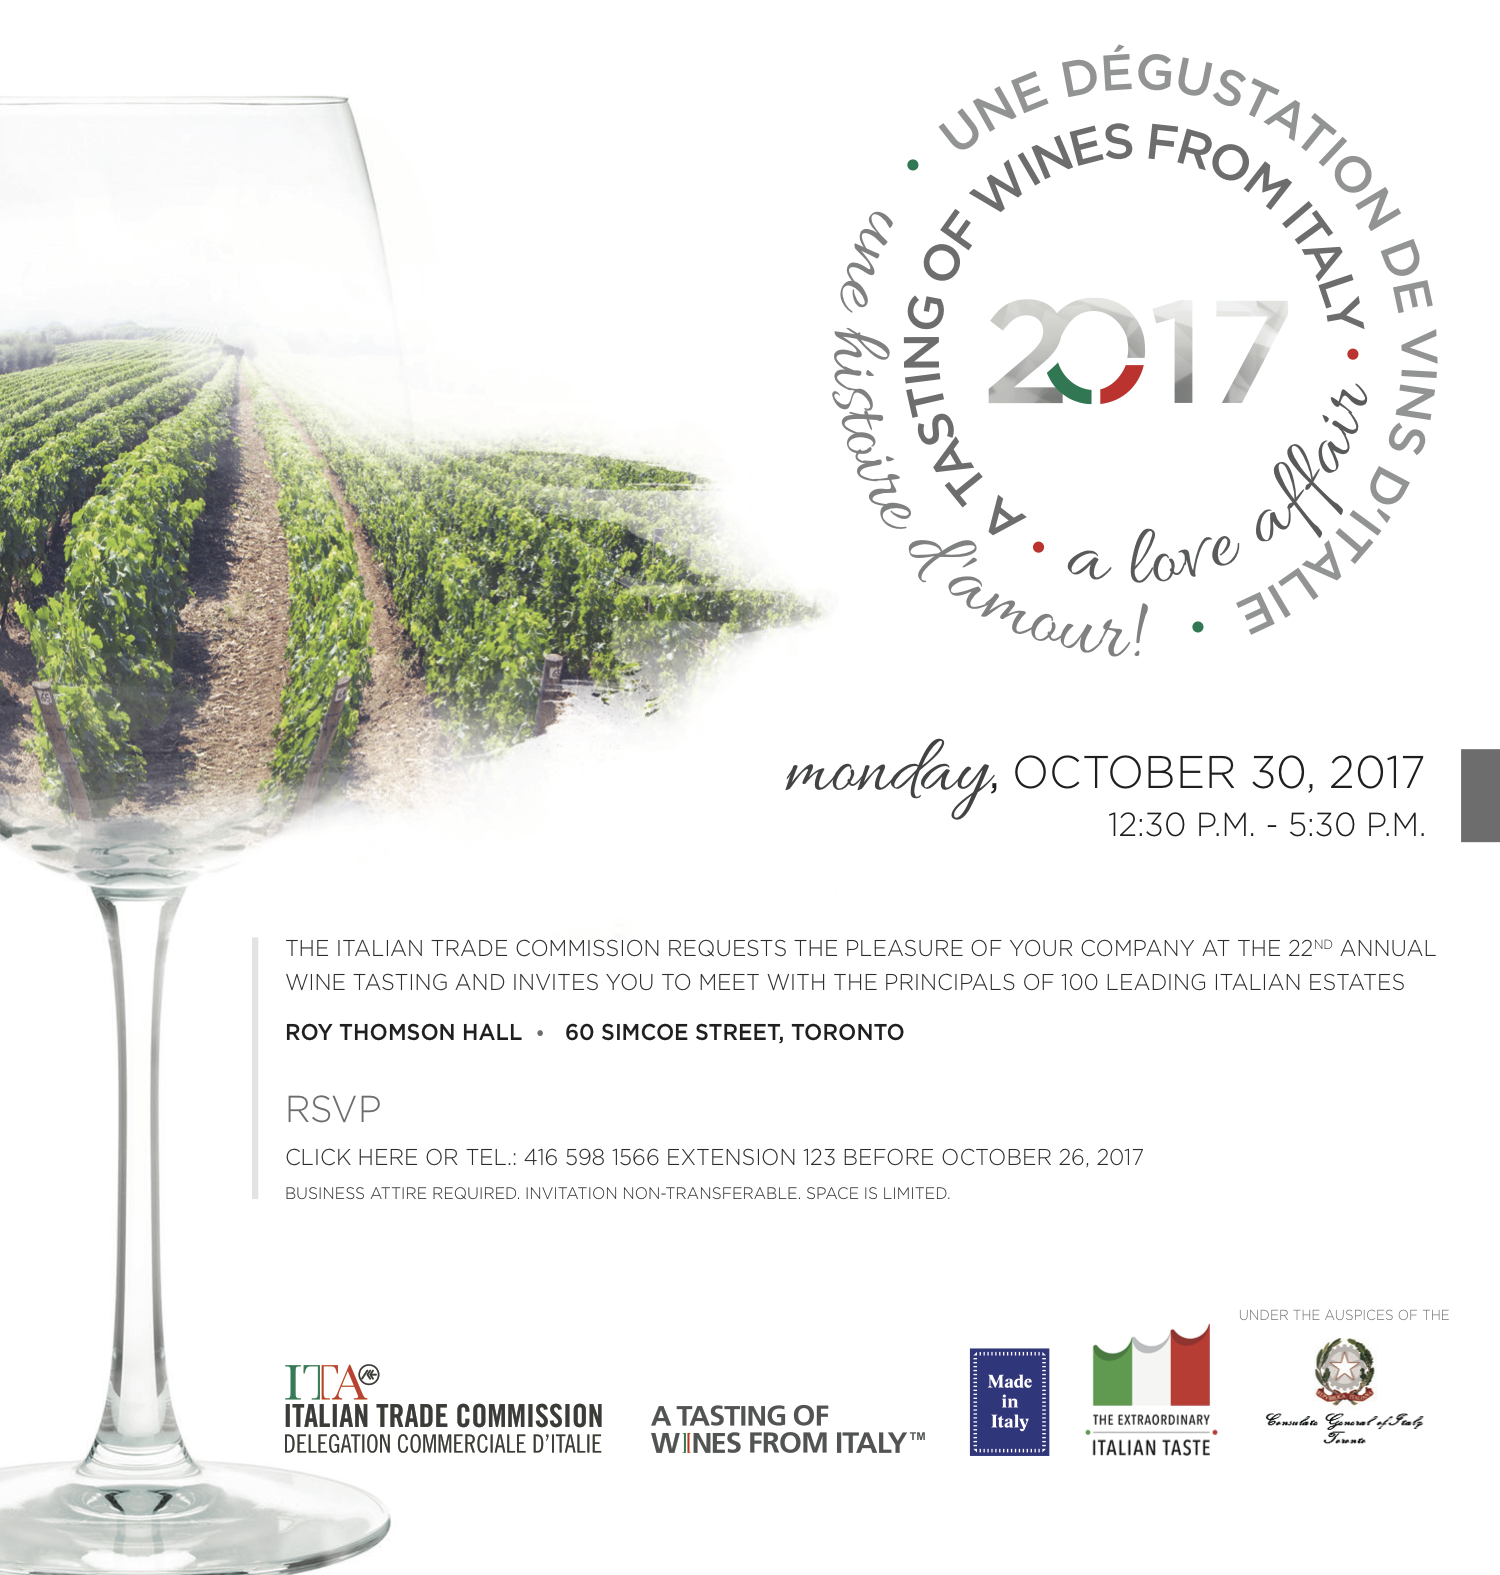 Oct 30th – Italian Wine Showcase (@ Roy Thomson Hall) Promotion